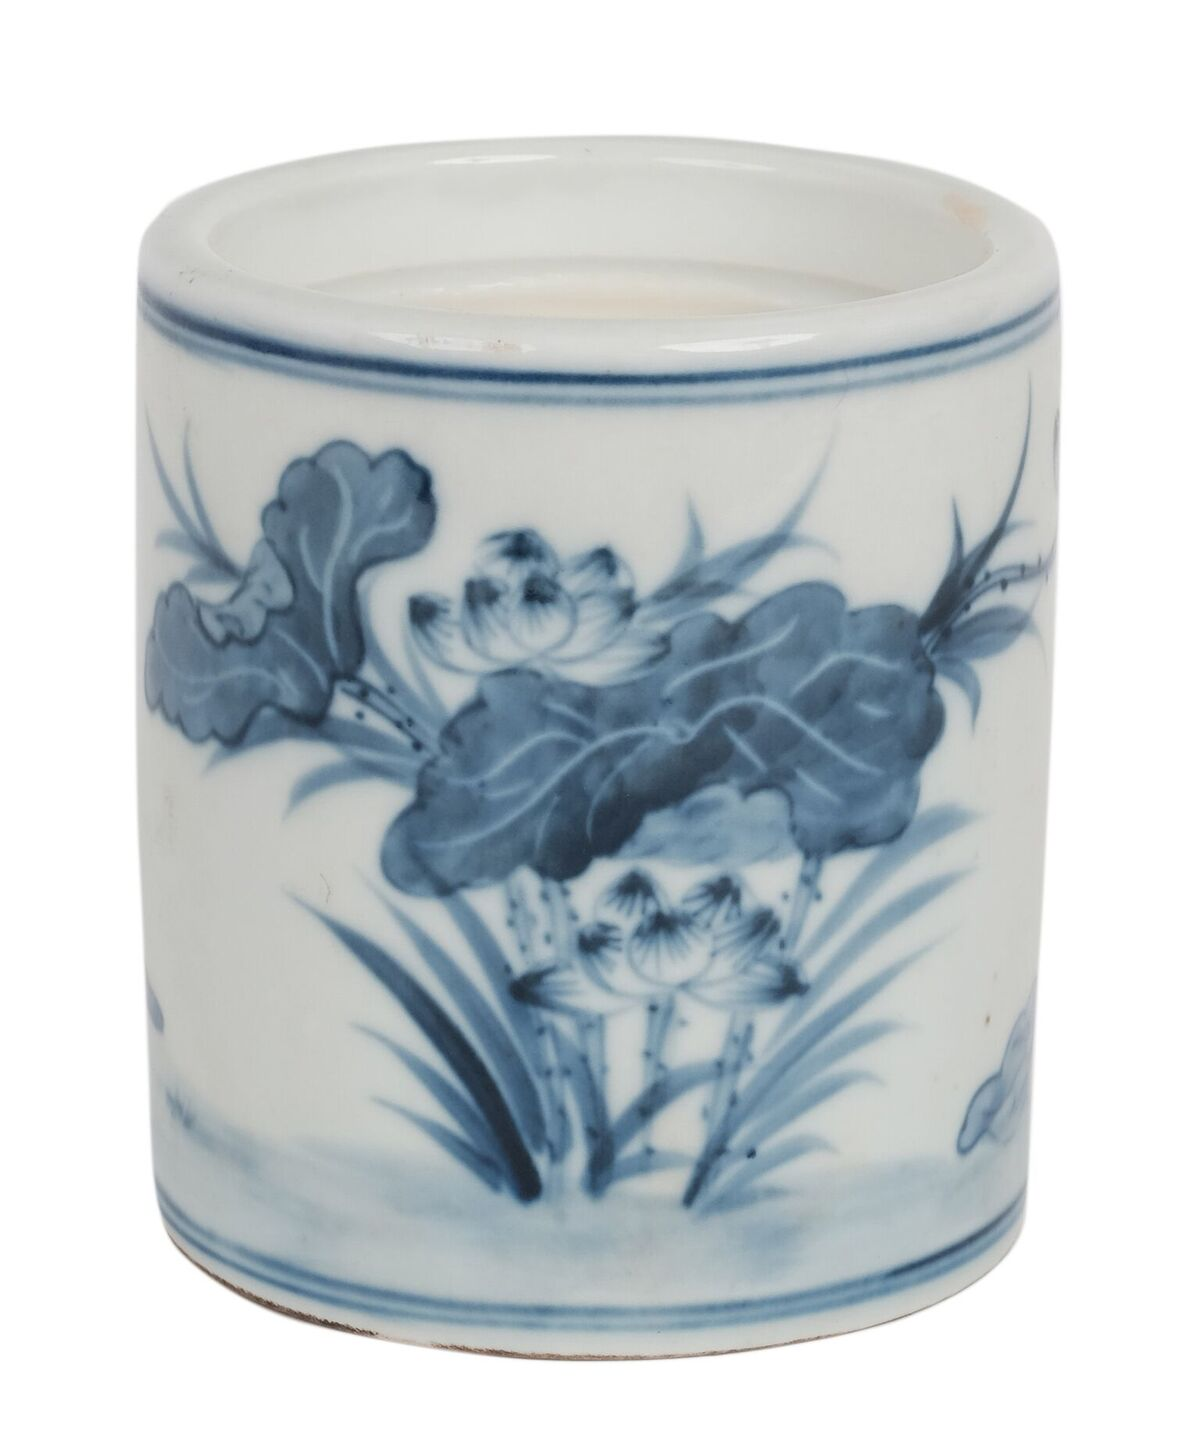 Fabulous lotus flower candle with hydrangea scent